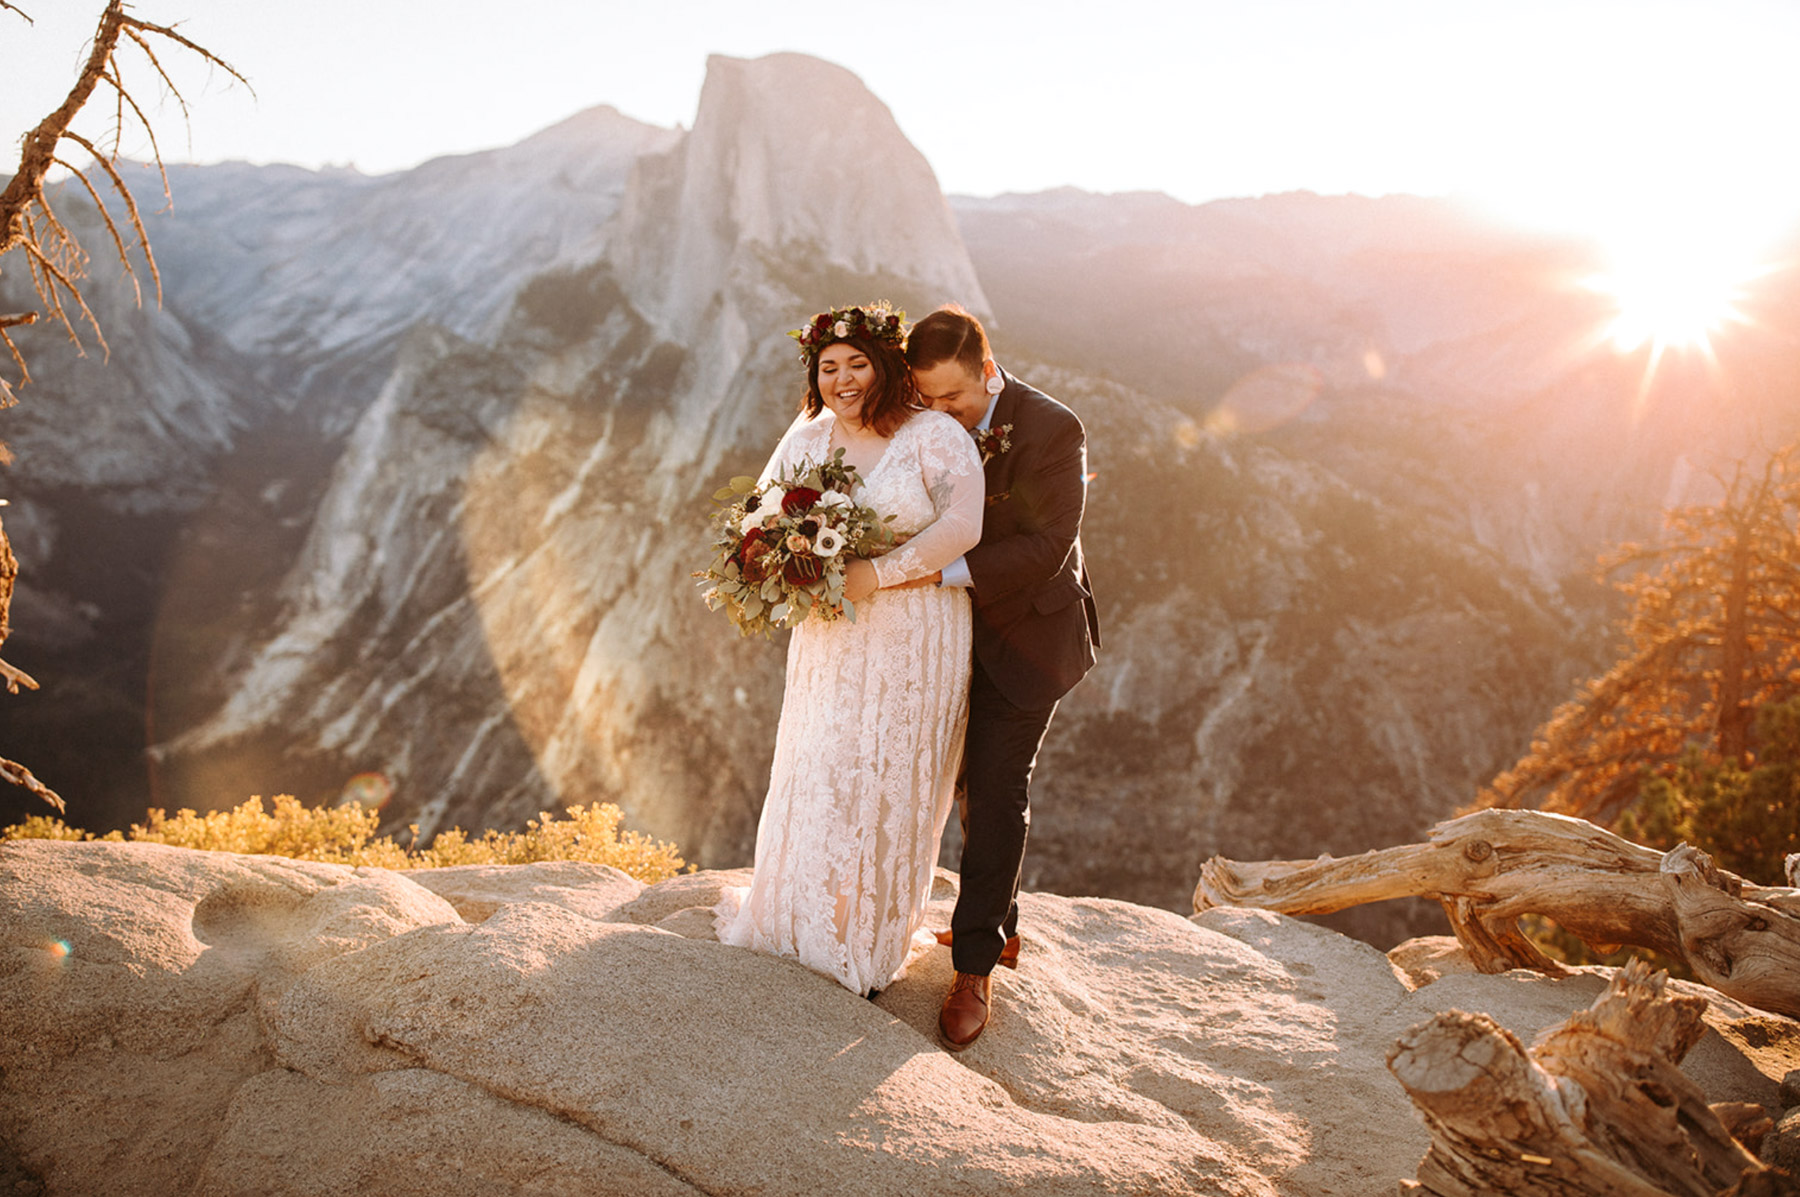 A wedding couple is embracing each other and they are standing on top of a mountain.